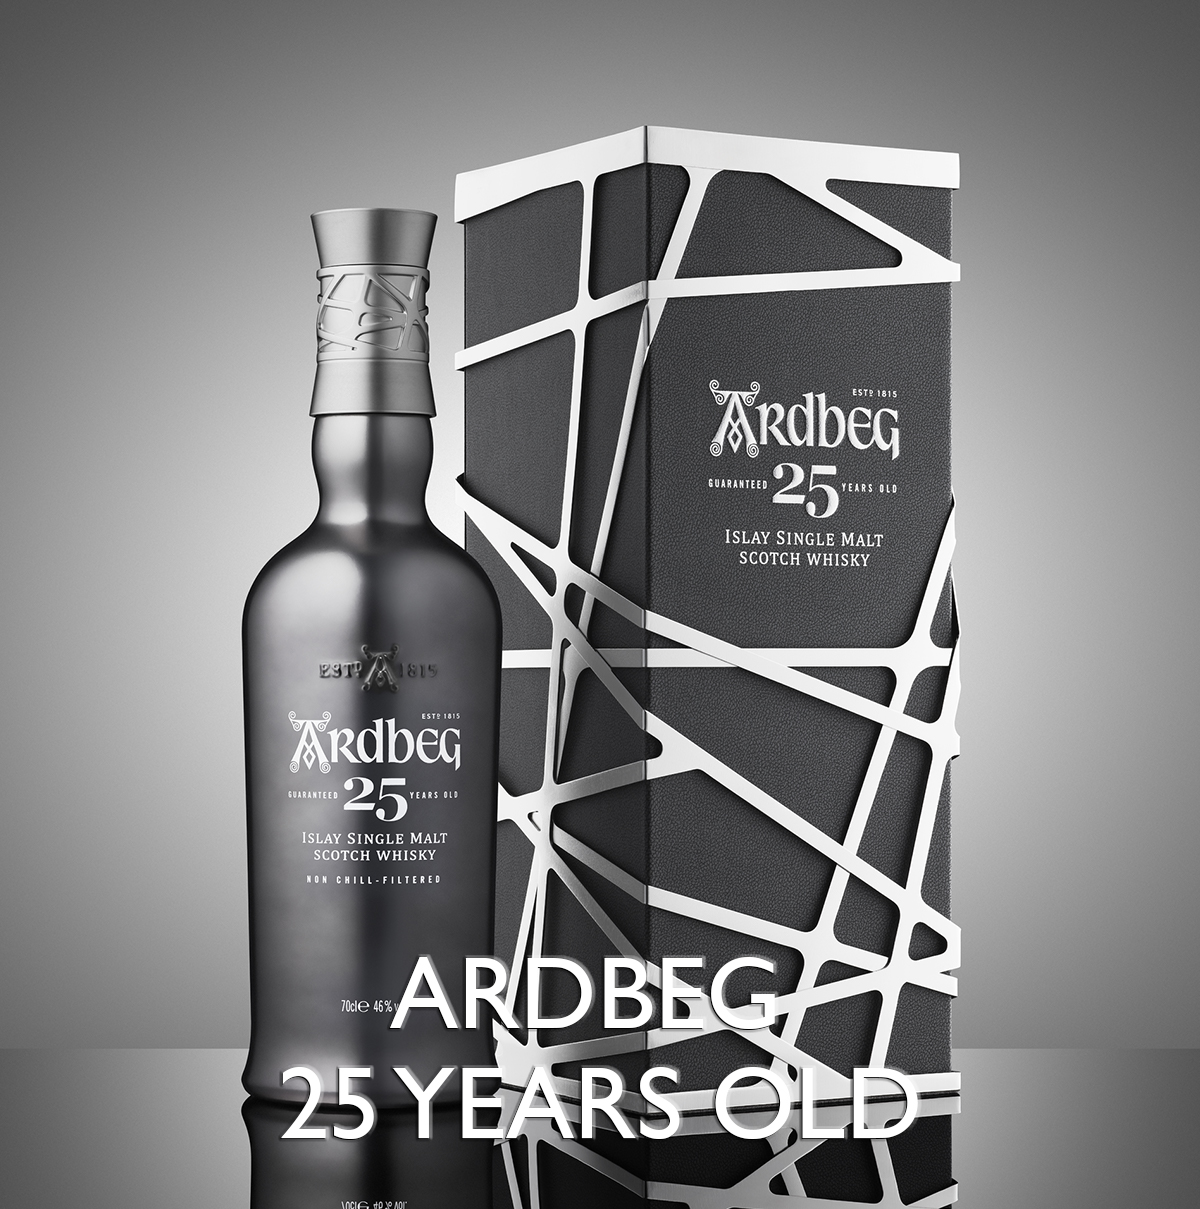 Ardbeg 25 years old